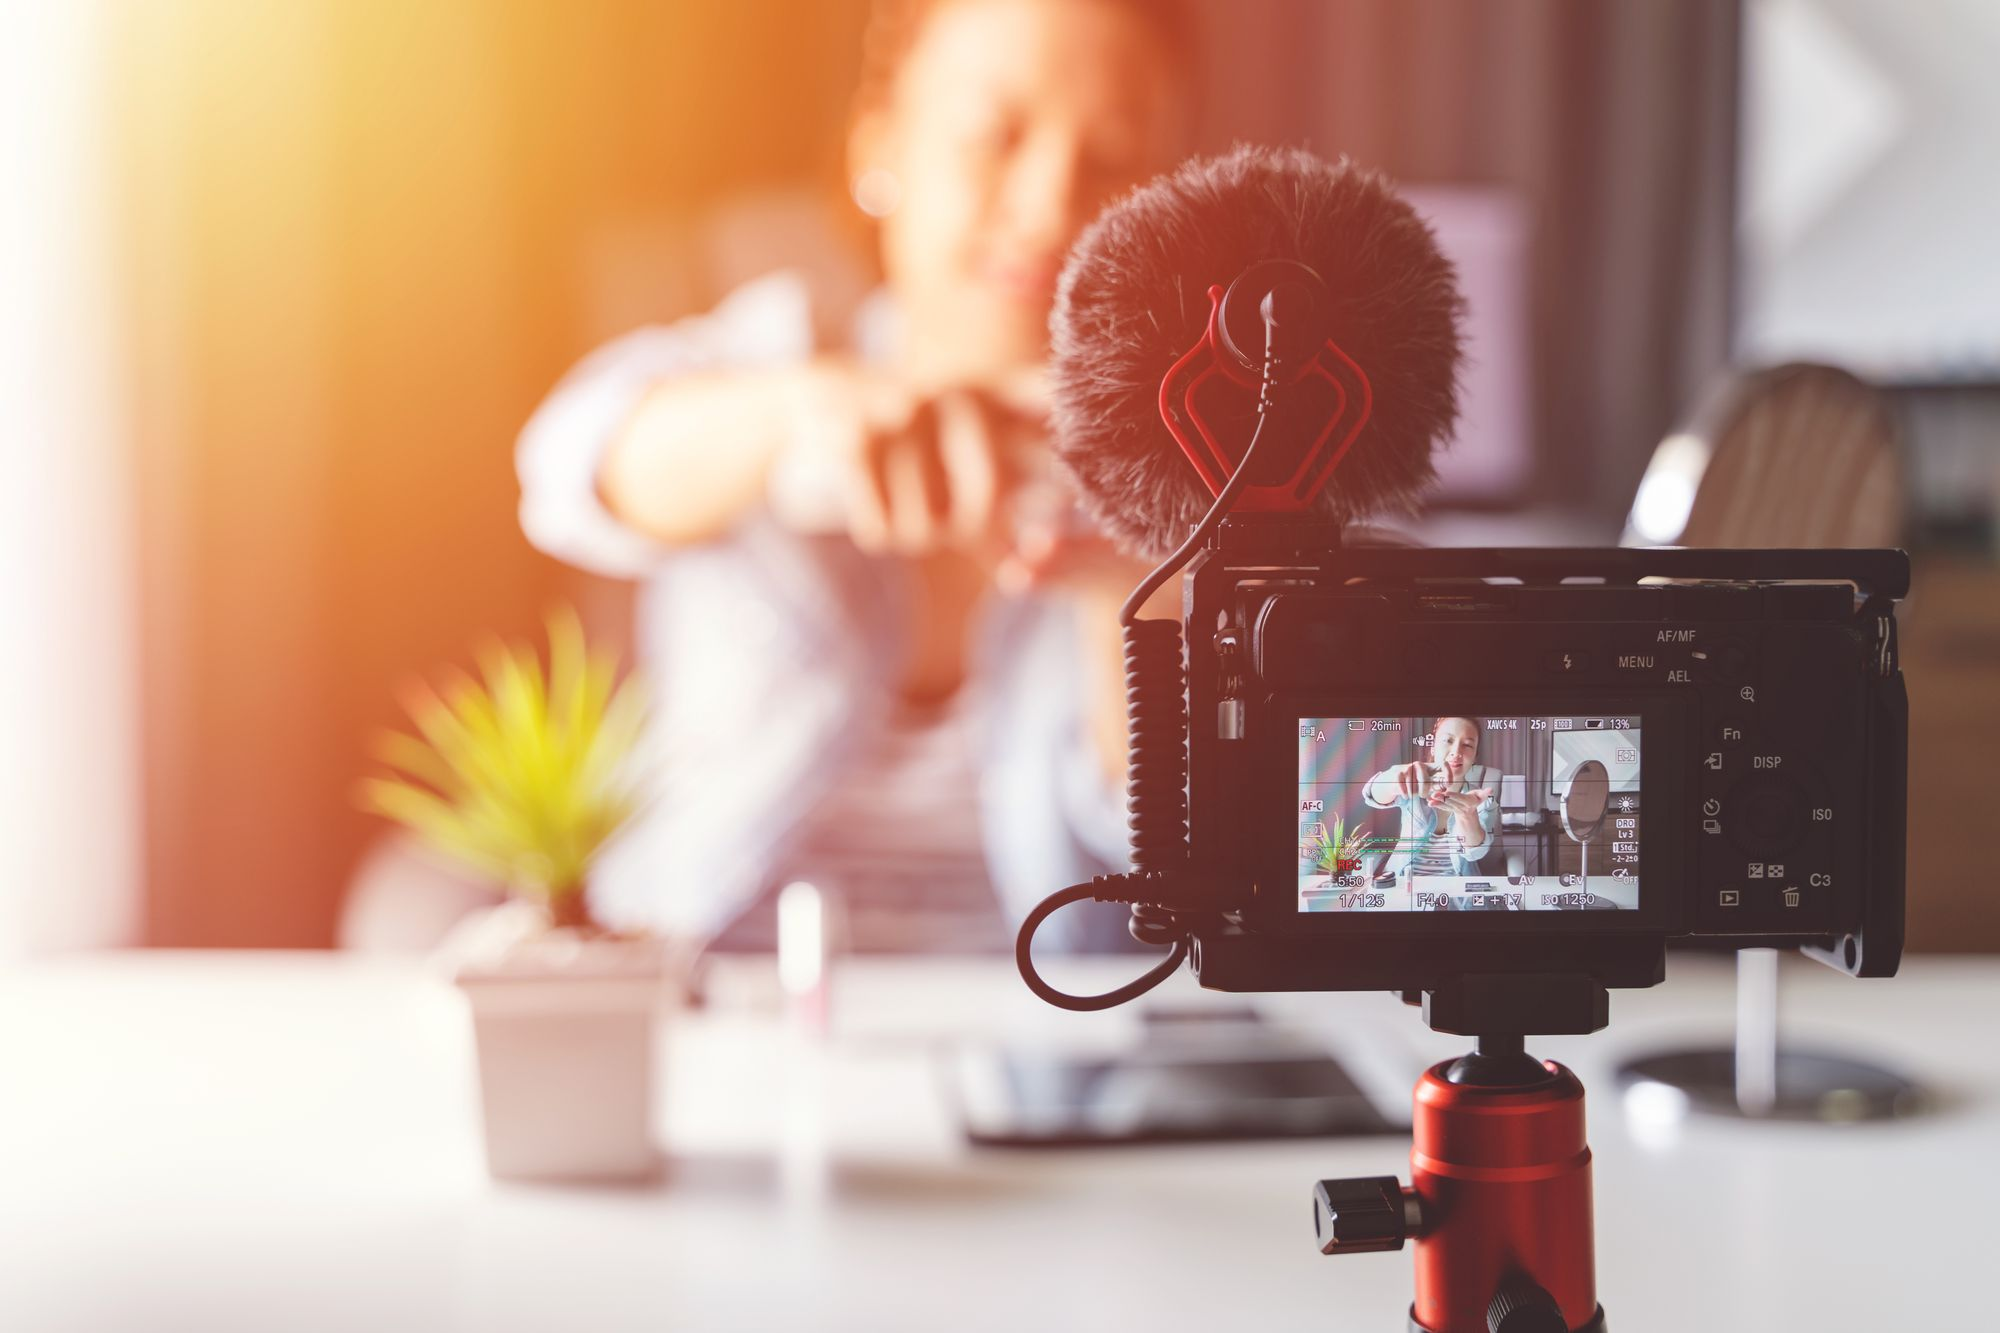 Don't Record Your Video Until You've Done These 6 Things